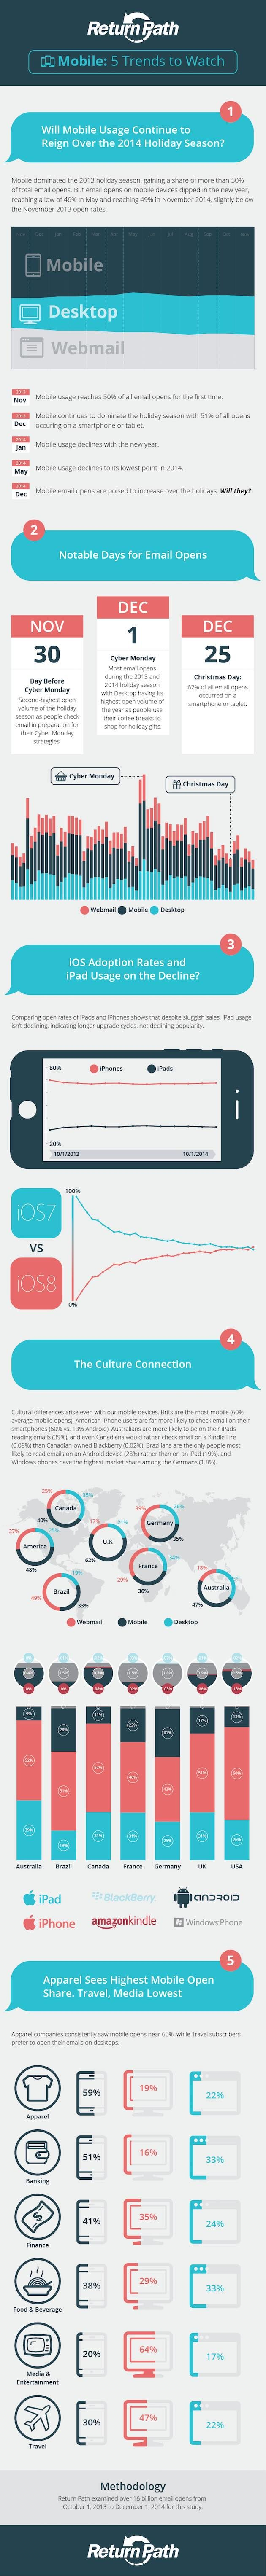 Email Marketing - Five Mobile Email Trends to Watch This Holiday Season - Infographic: MarketingProfs Article | via #BornToBeSocial, Pinterest Marketing | http://borntobesocial.com